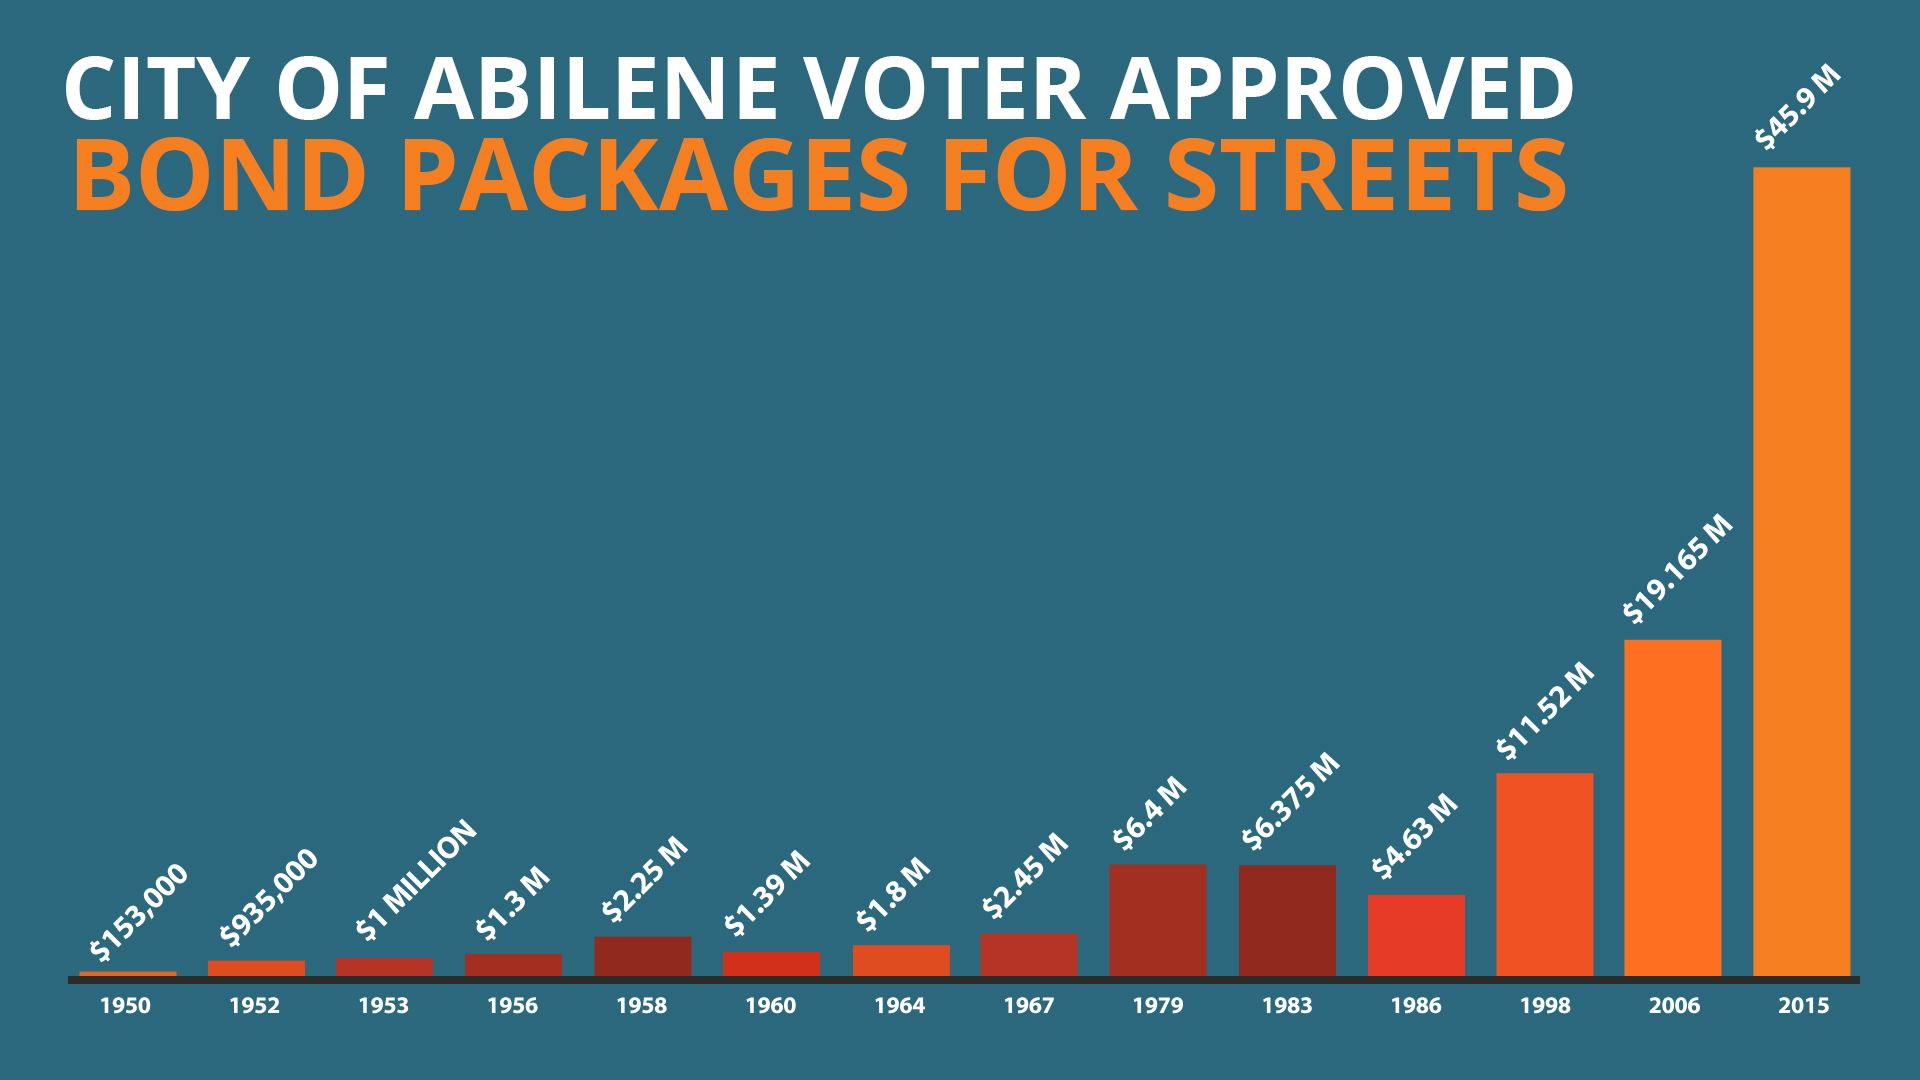 Timeline showing the years Abilene voters approved bond measures and total amounts